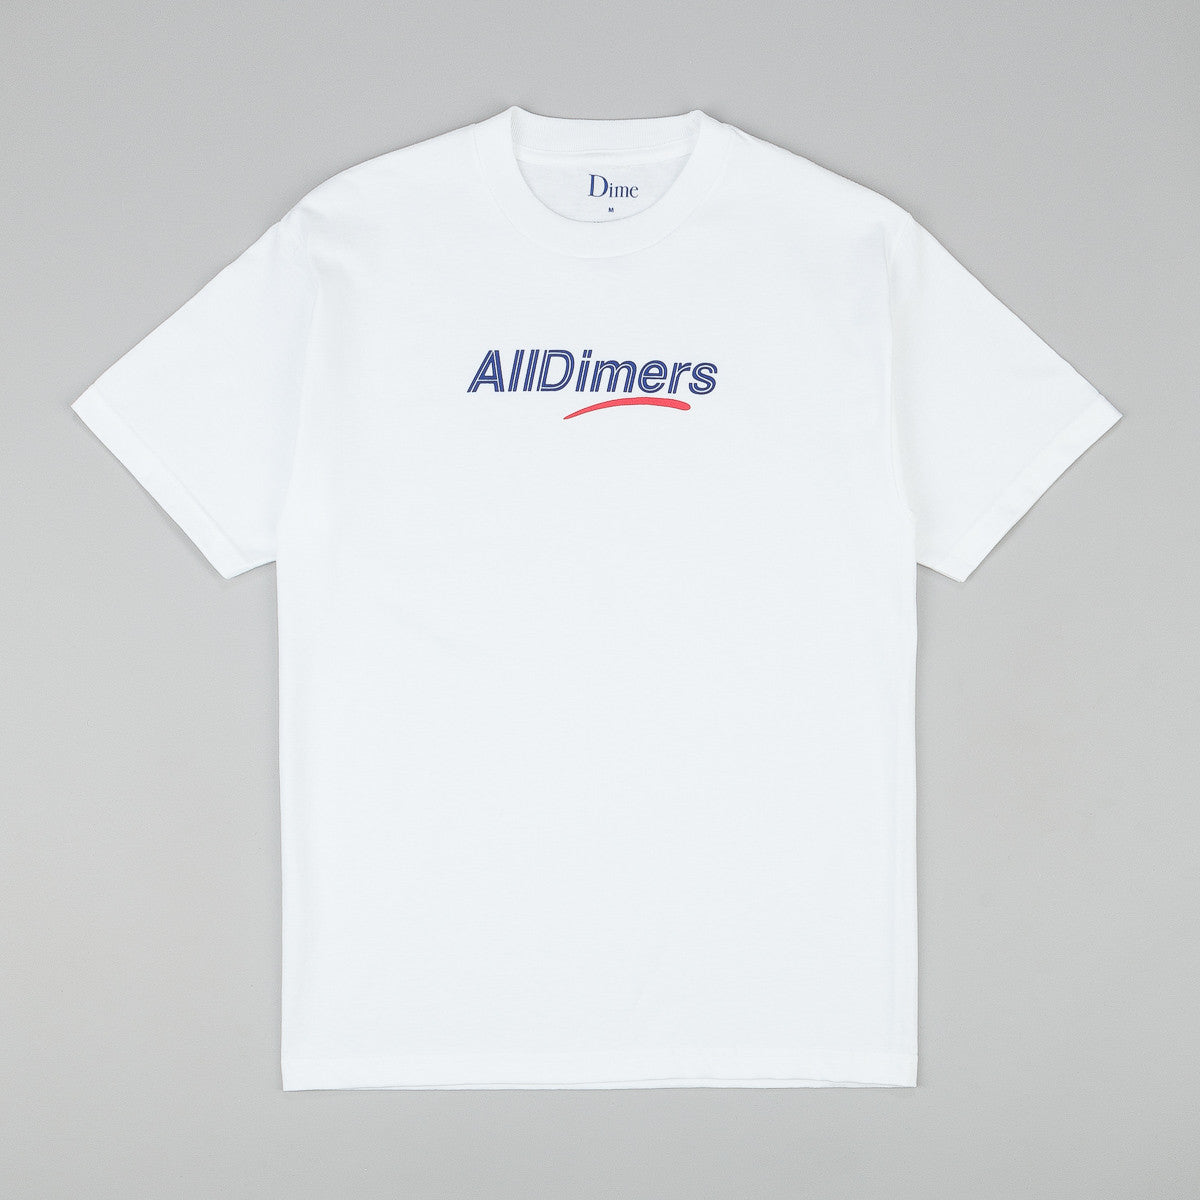 Alltimers X Dime Alldimers T-Shirt - White